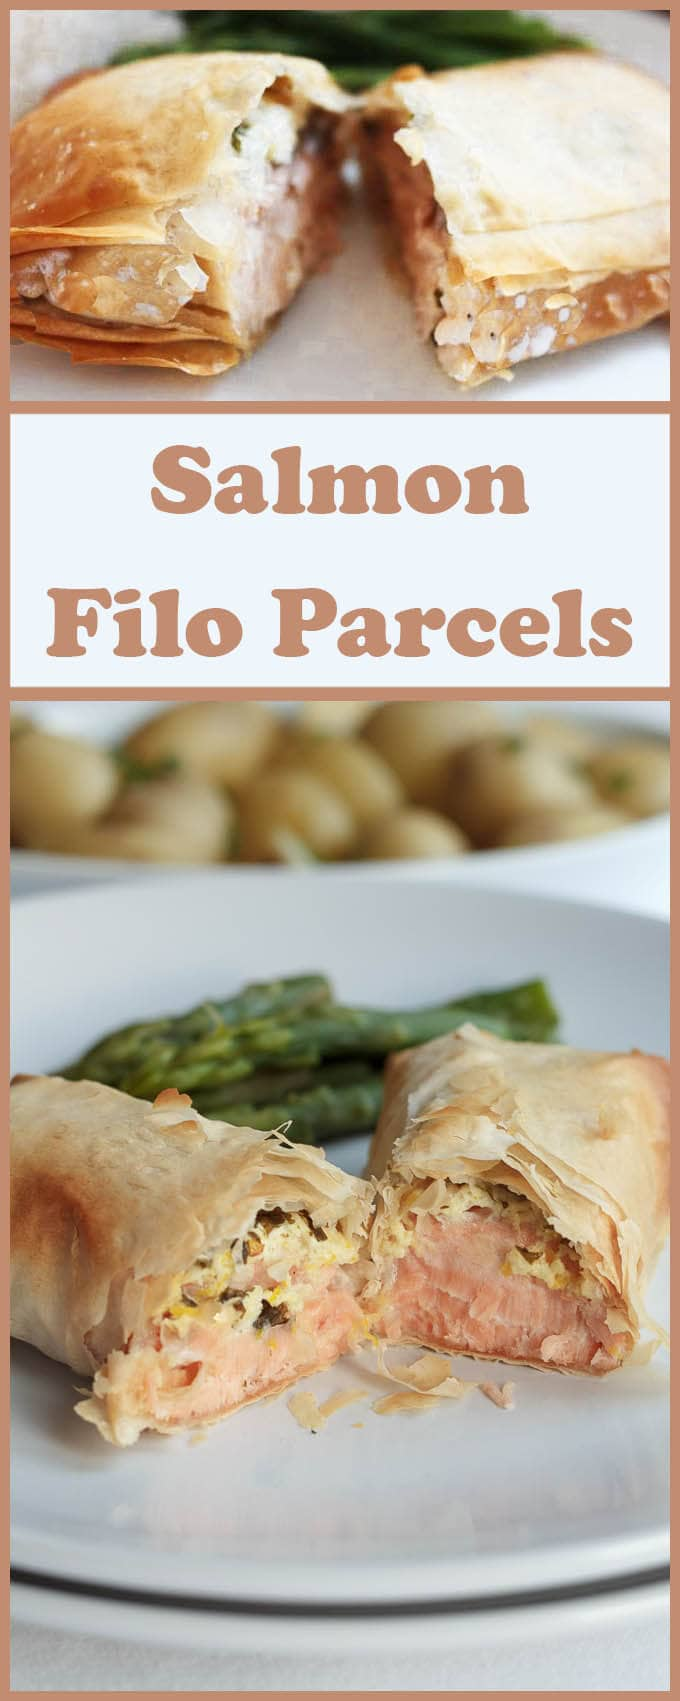 Its simple using filo pastry for these salmon filo parcels. Filo is much easier to roll than traditional pastry and it doesn't have the high levels of saturated fat neither!